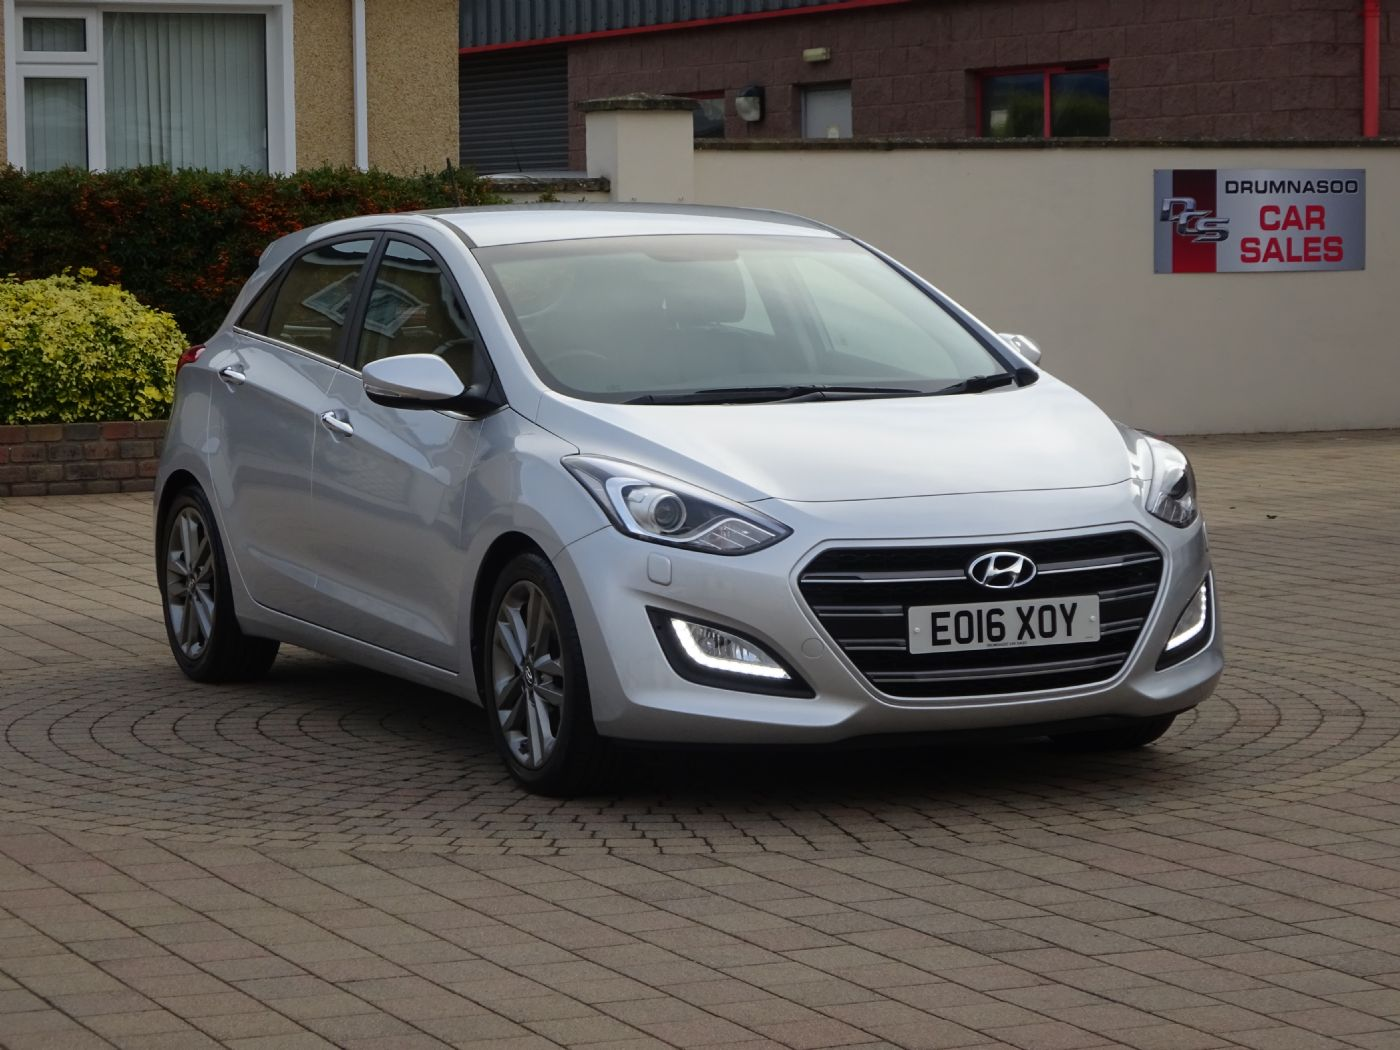 Hyundai I30 1.6 Crdi [136] Premium, Sat nav, Heated leather seats